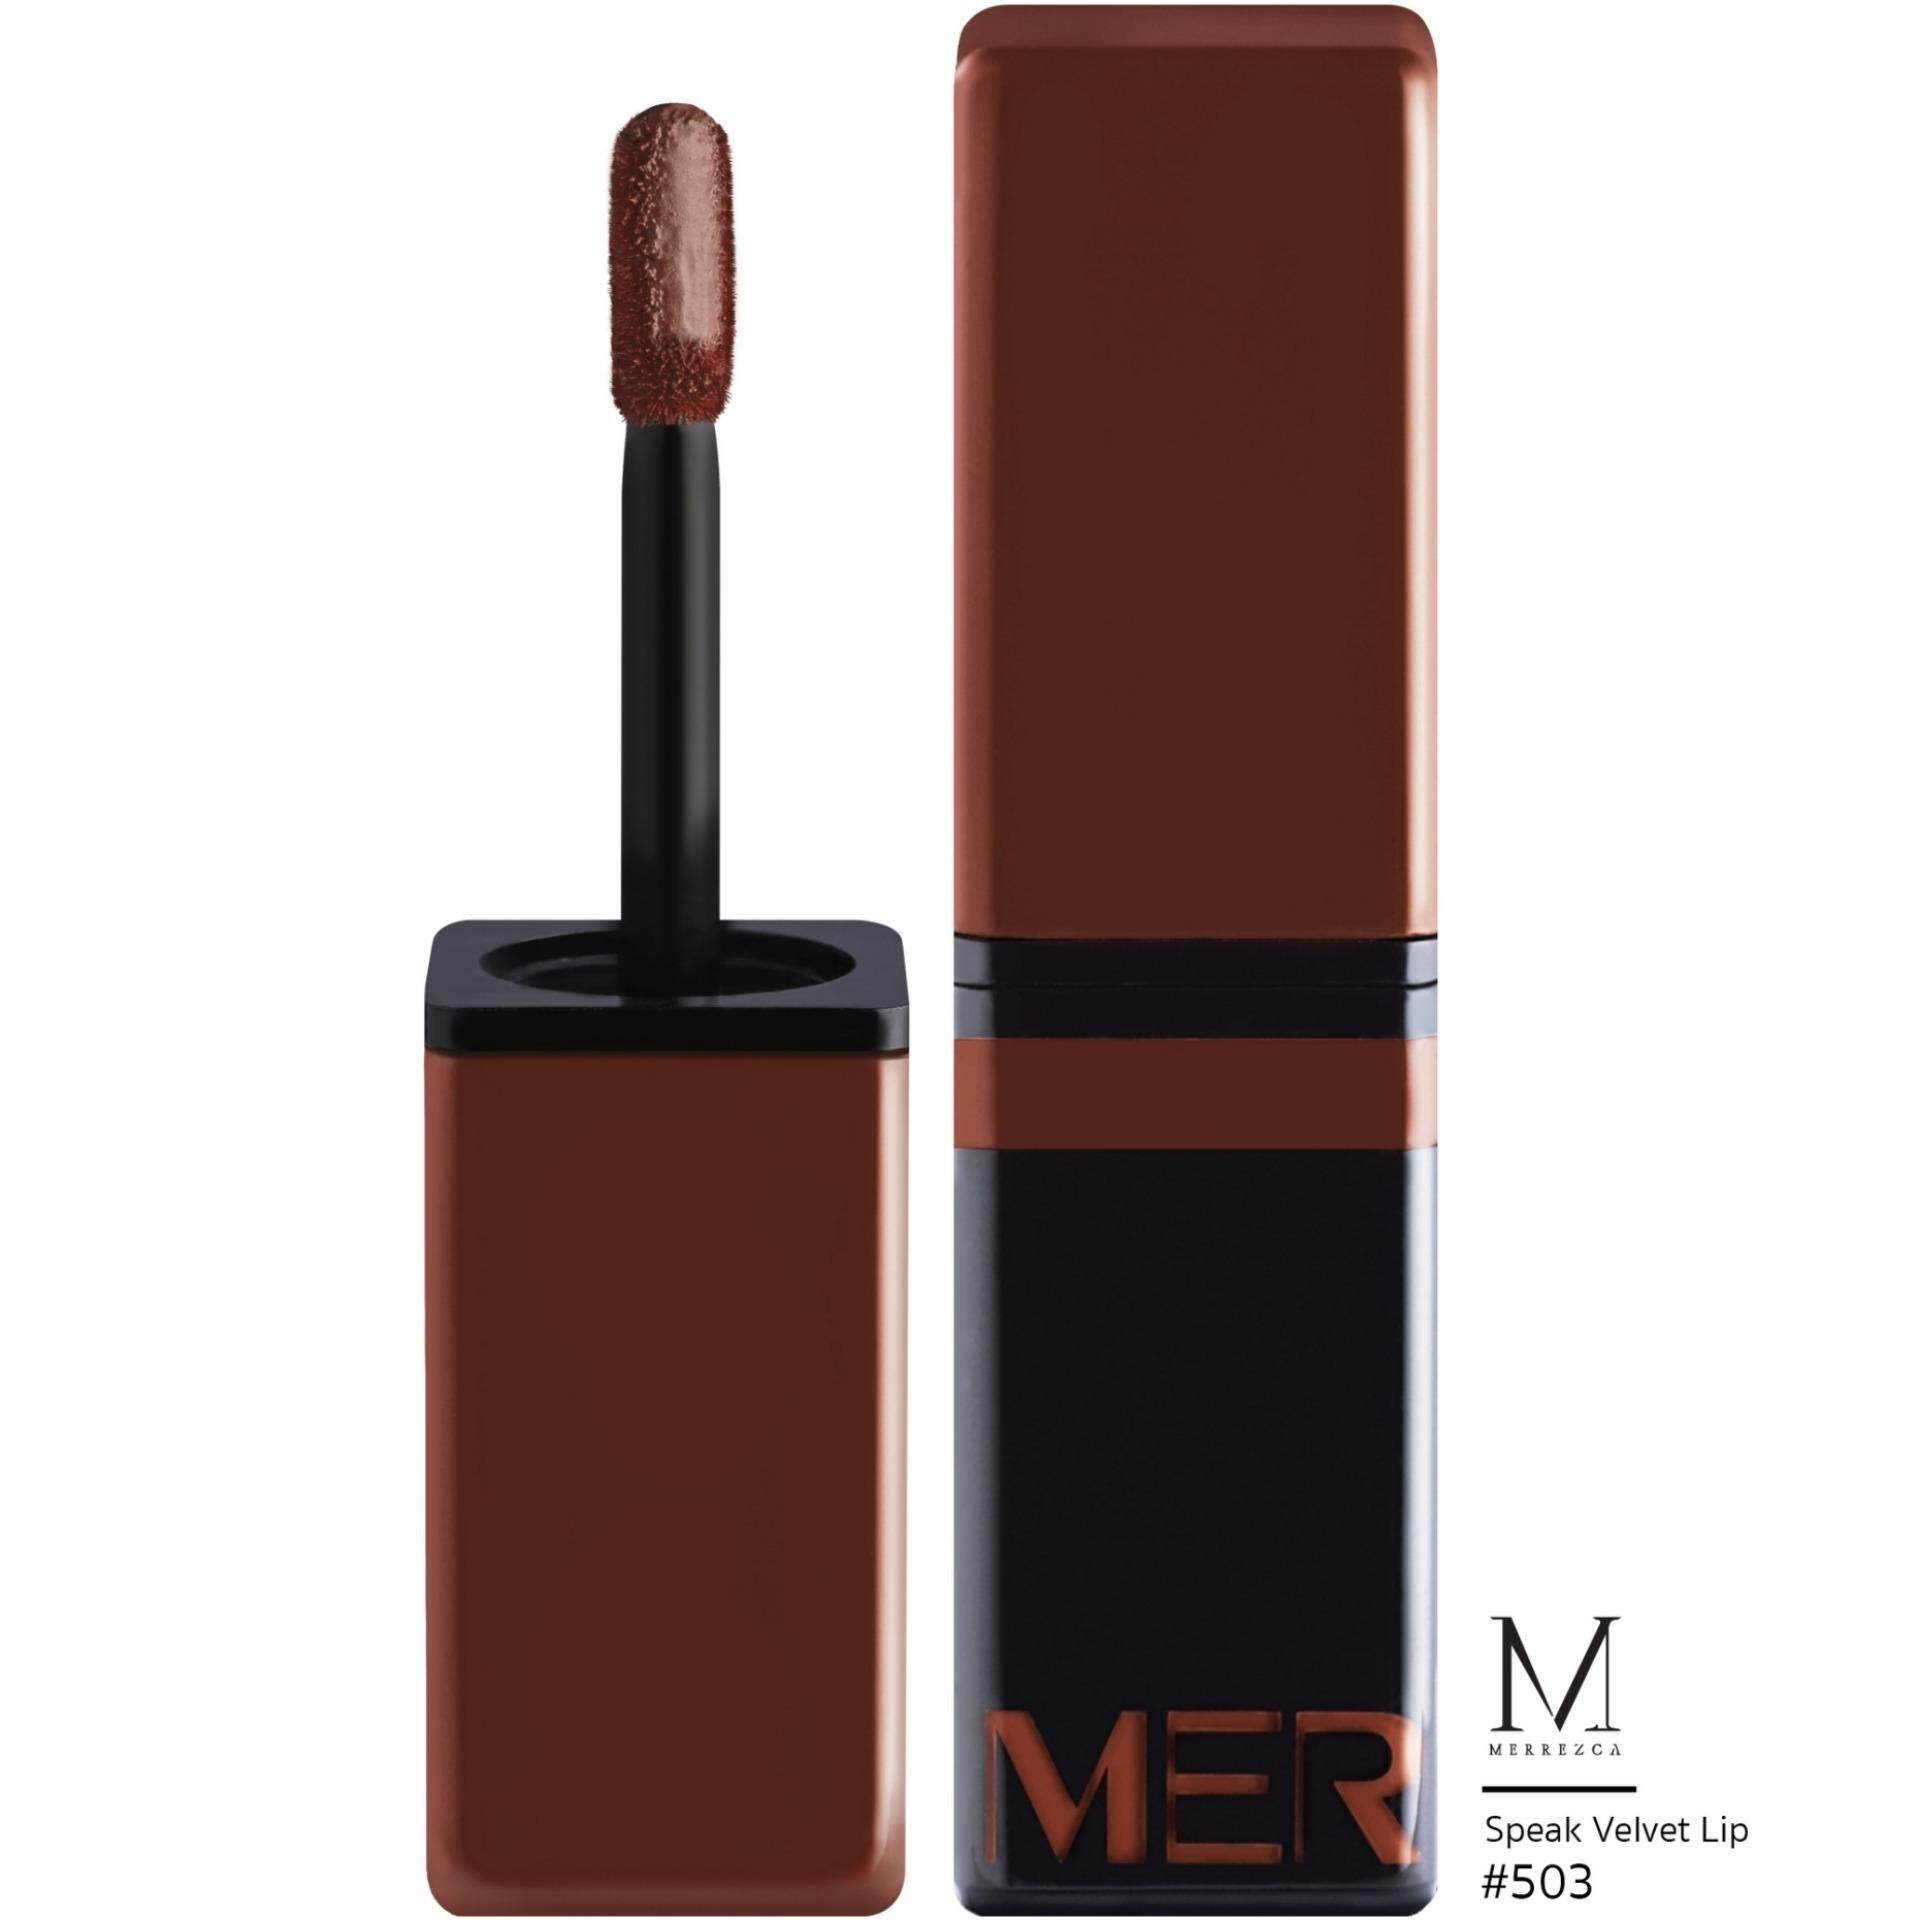 Merrez'ca Speak Velvet lip #503Rust